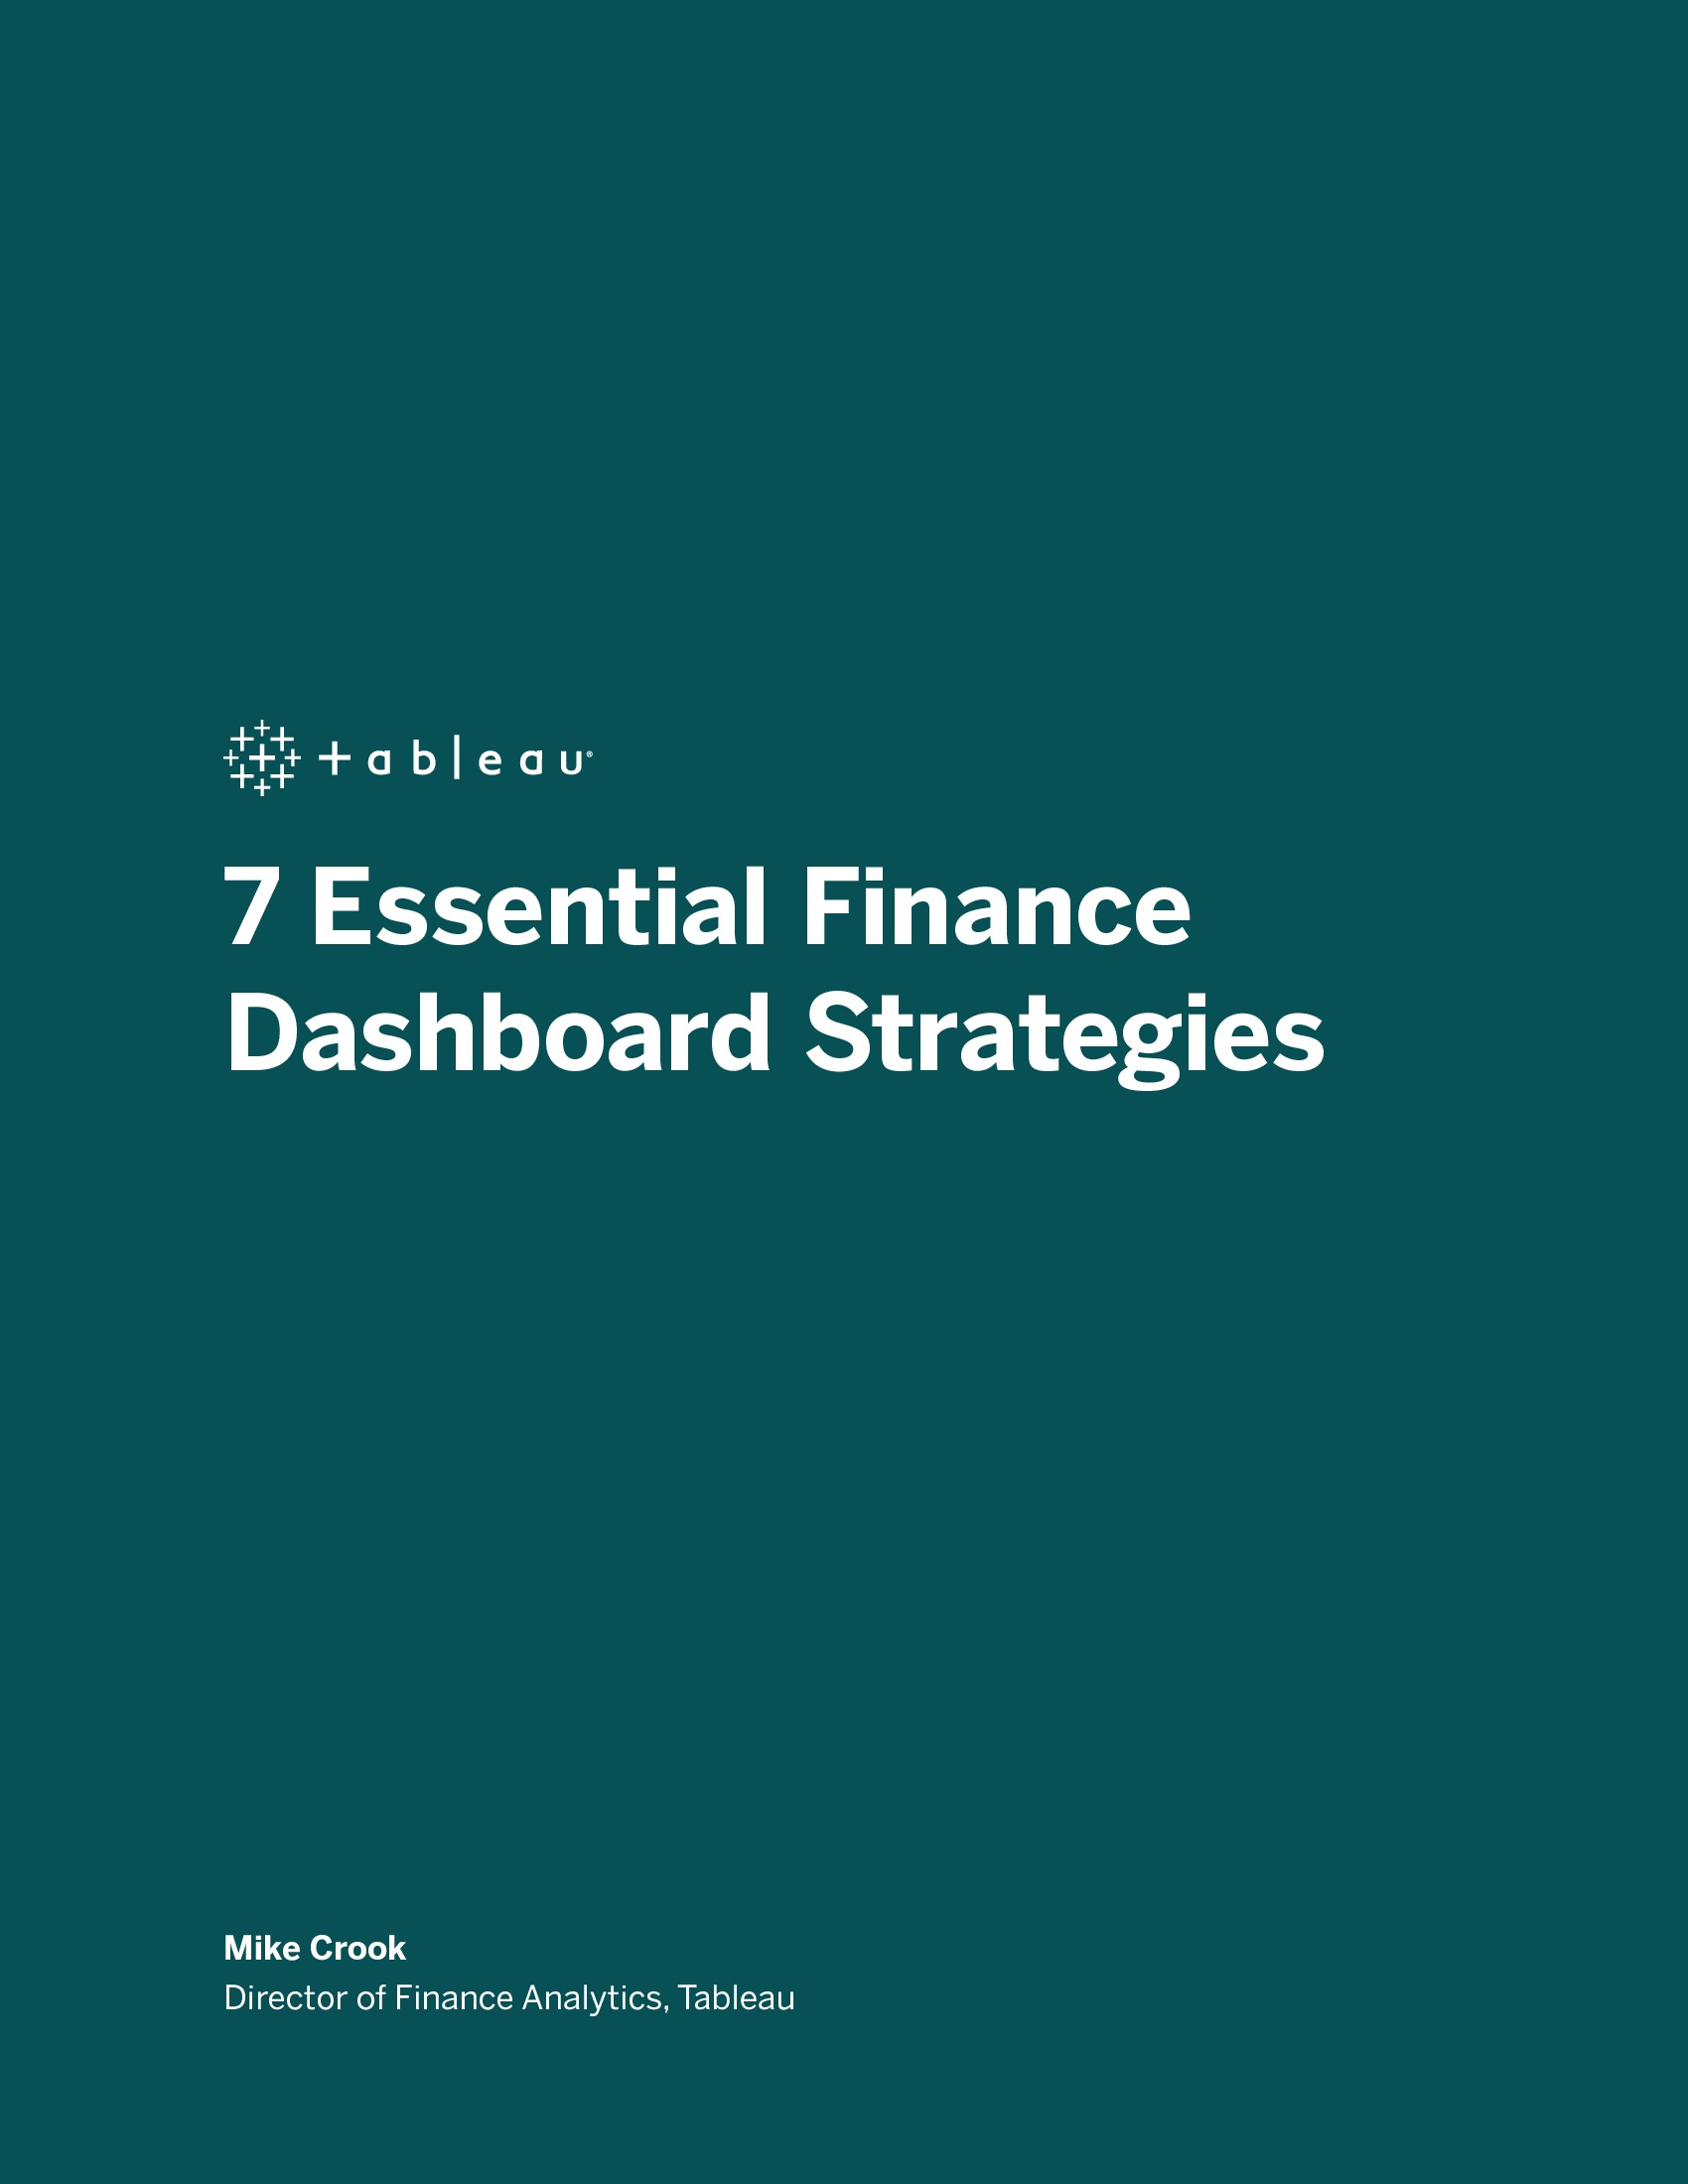 7 Essential Finance Dashboard Strategies